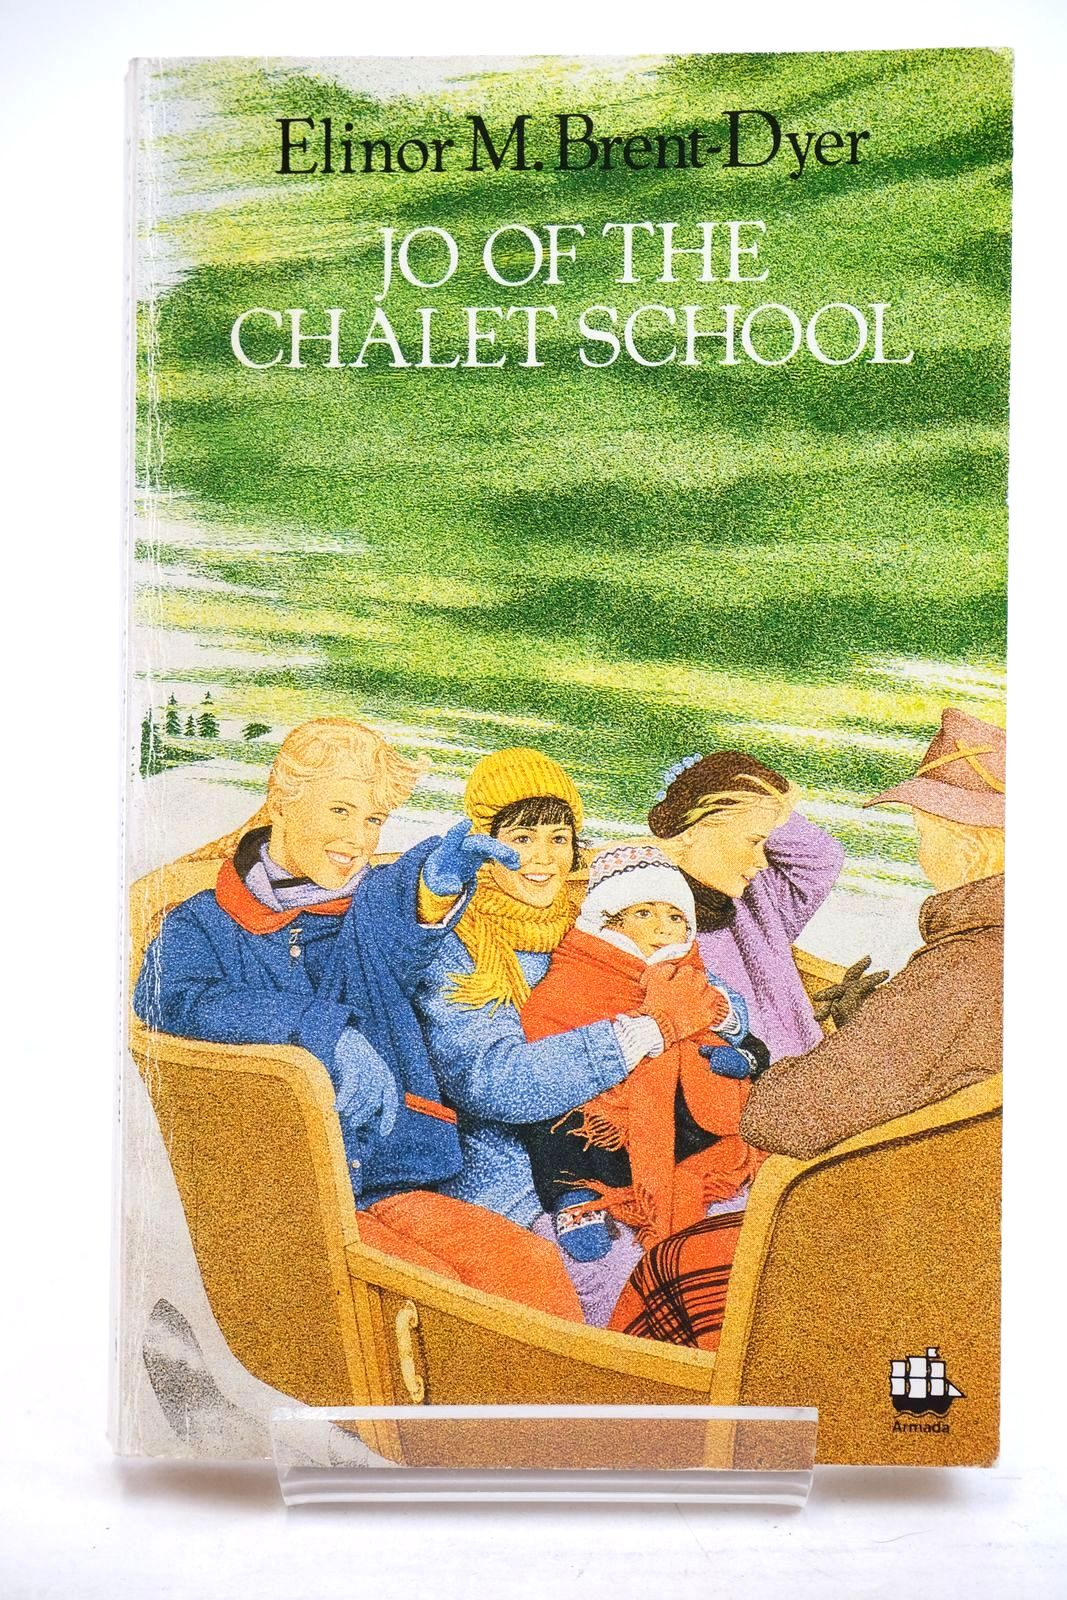 Photo of JO OF THE CHALET SCHOOL written by Brent-Dyer, Elinor M. published by Armada (STOCK CODE: 1320035)  for sale by Stella & Rose's Books